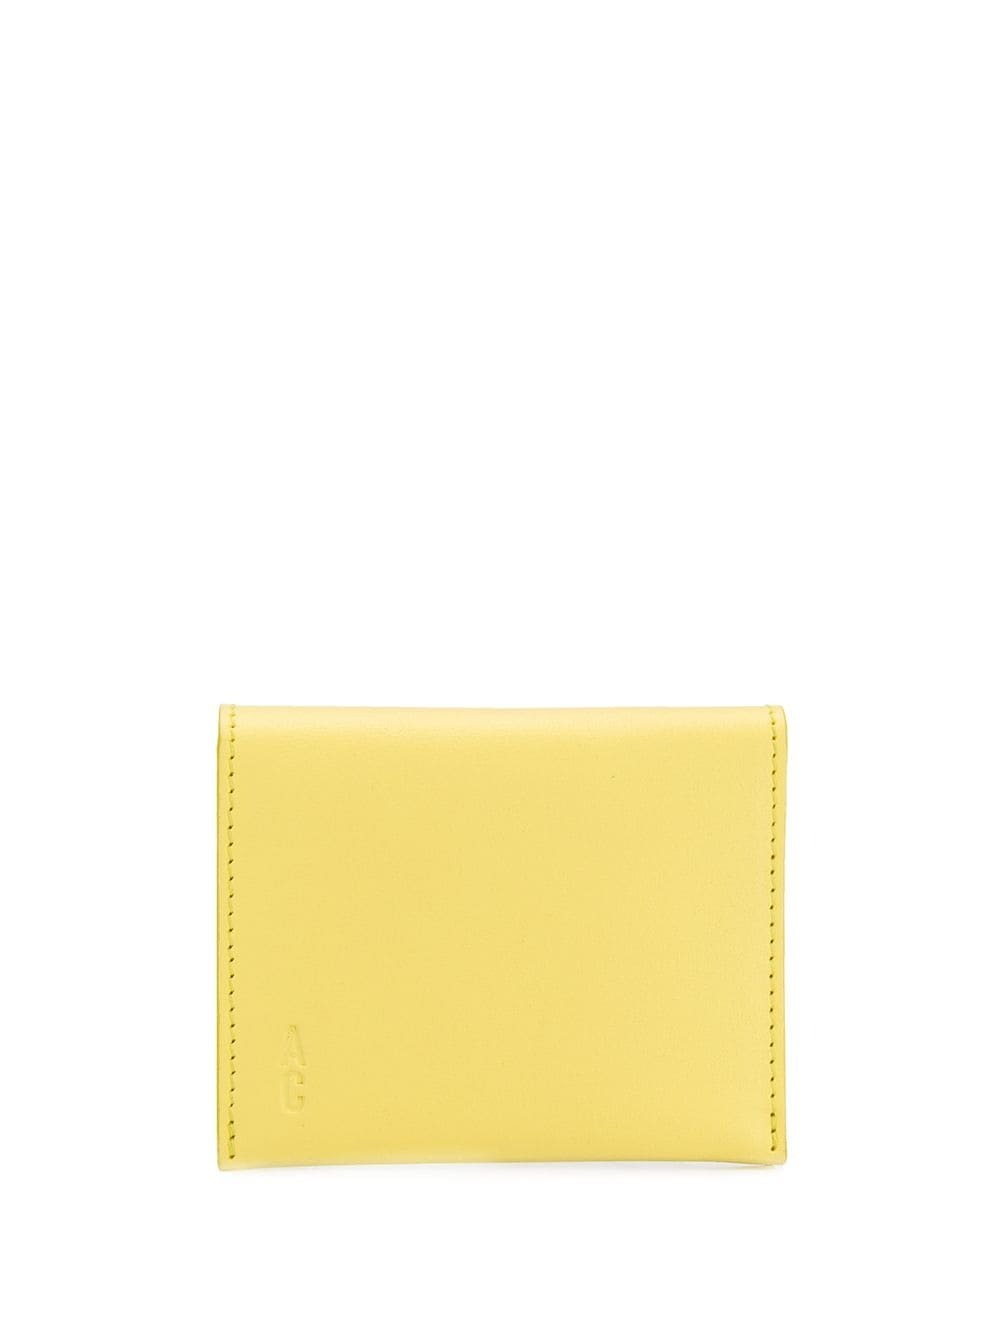 shop ally capellino wallets & card holders